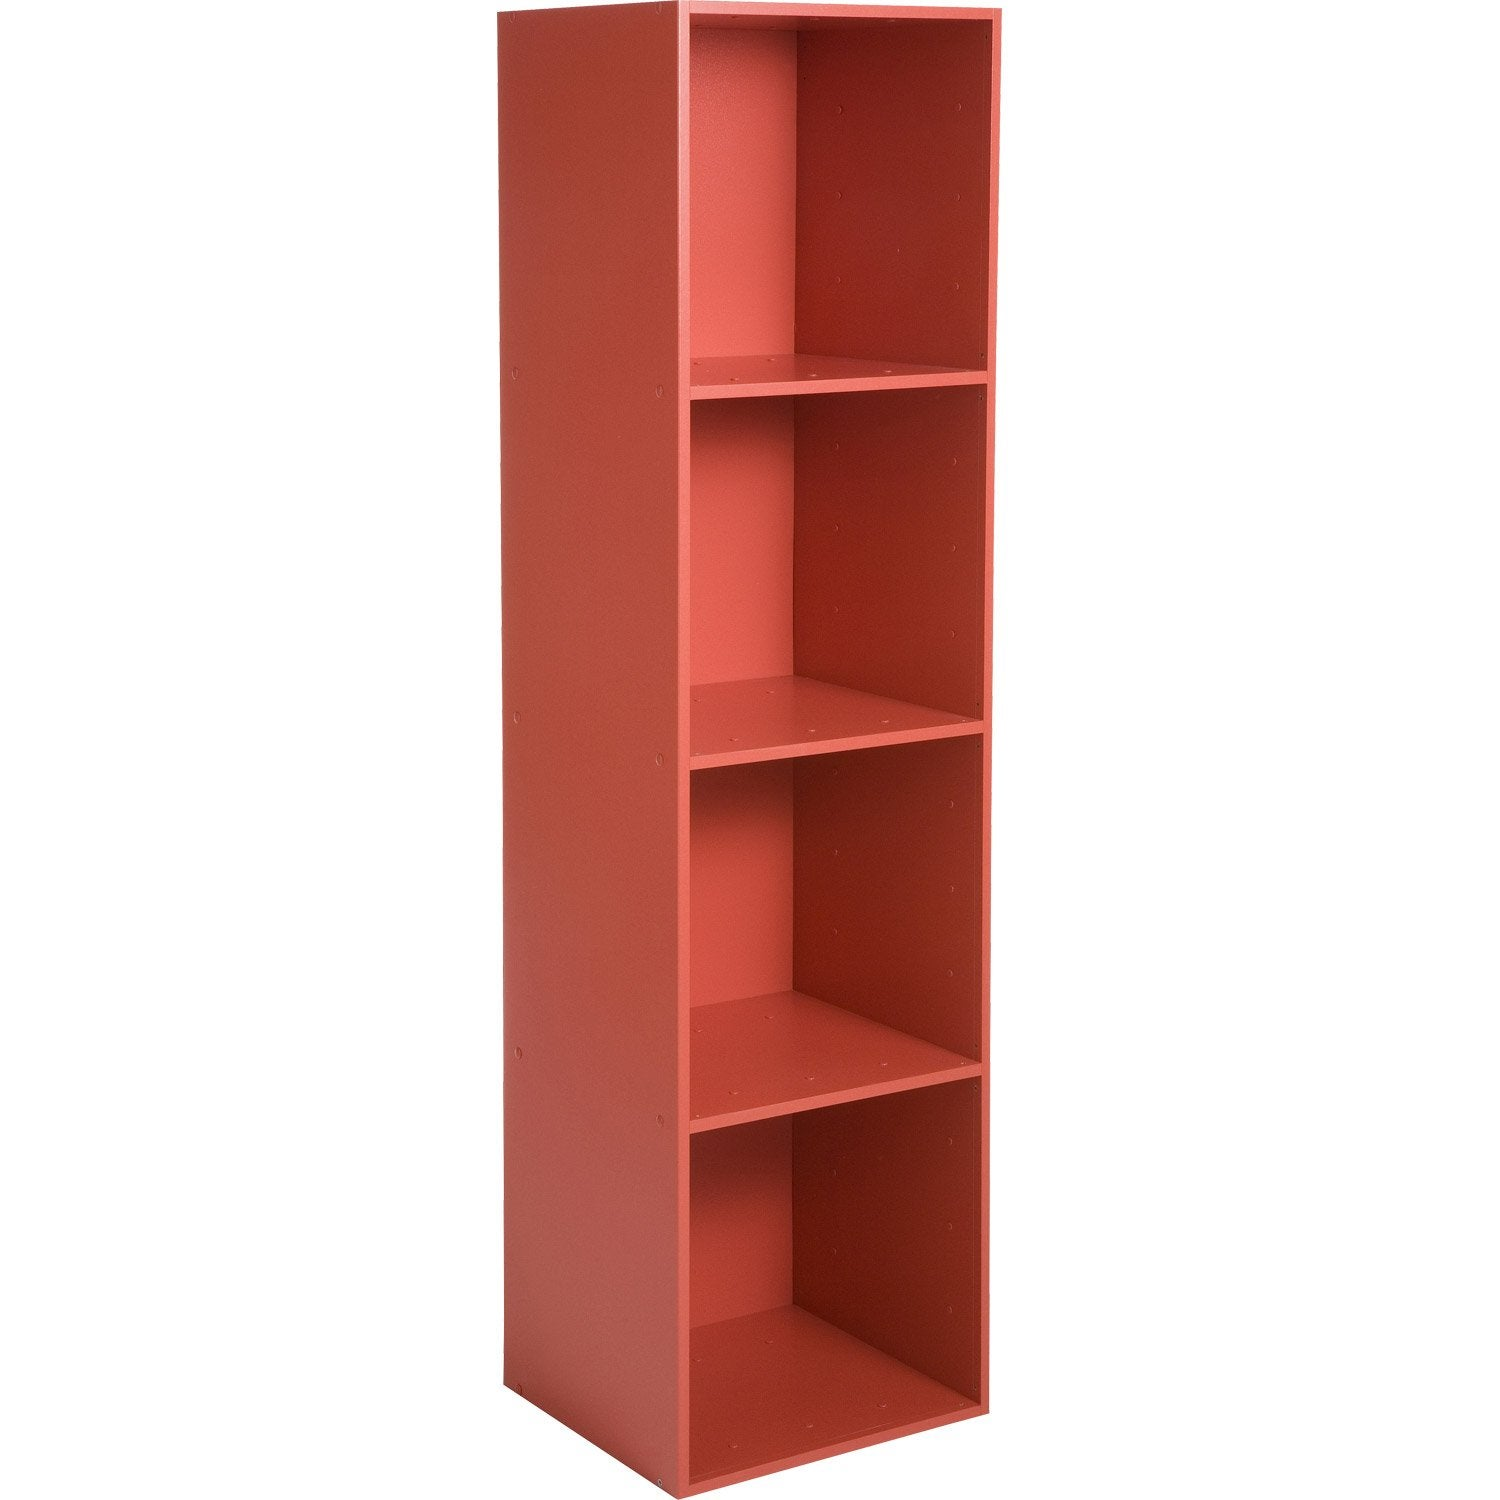 Etag re 4 cases multikaz rouge x x for Leroy merlin etagere salle de bain